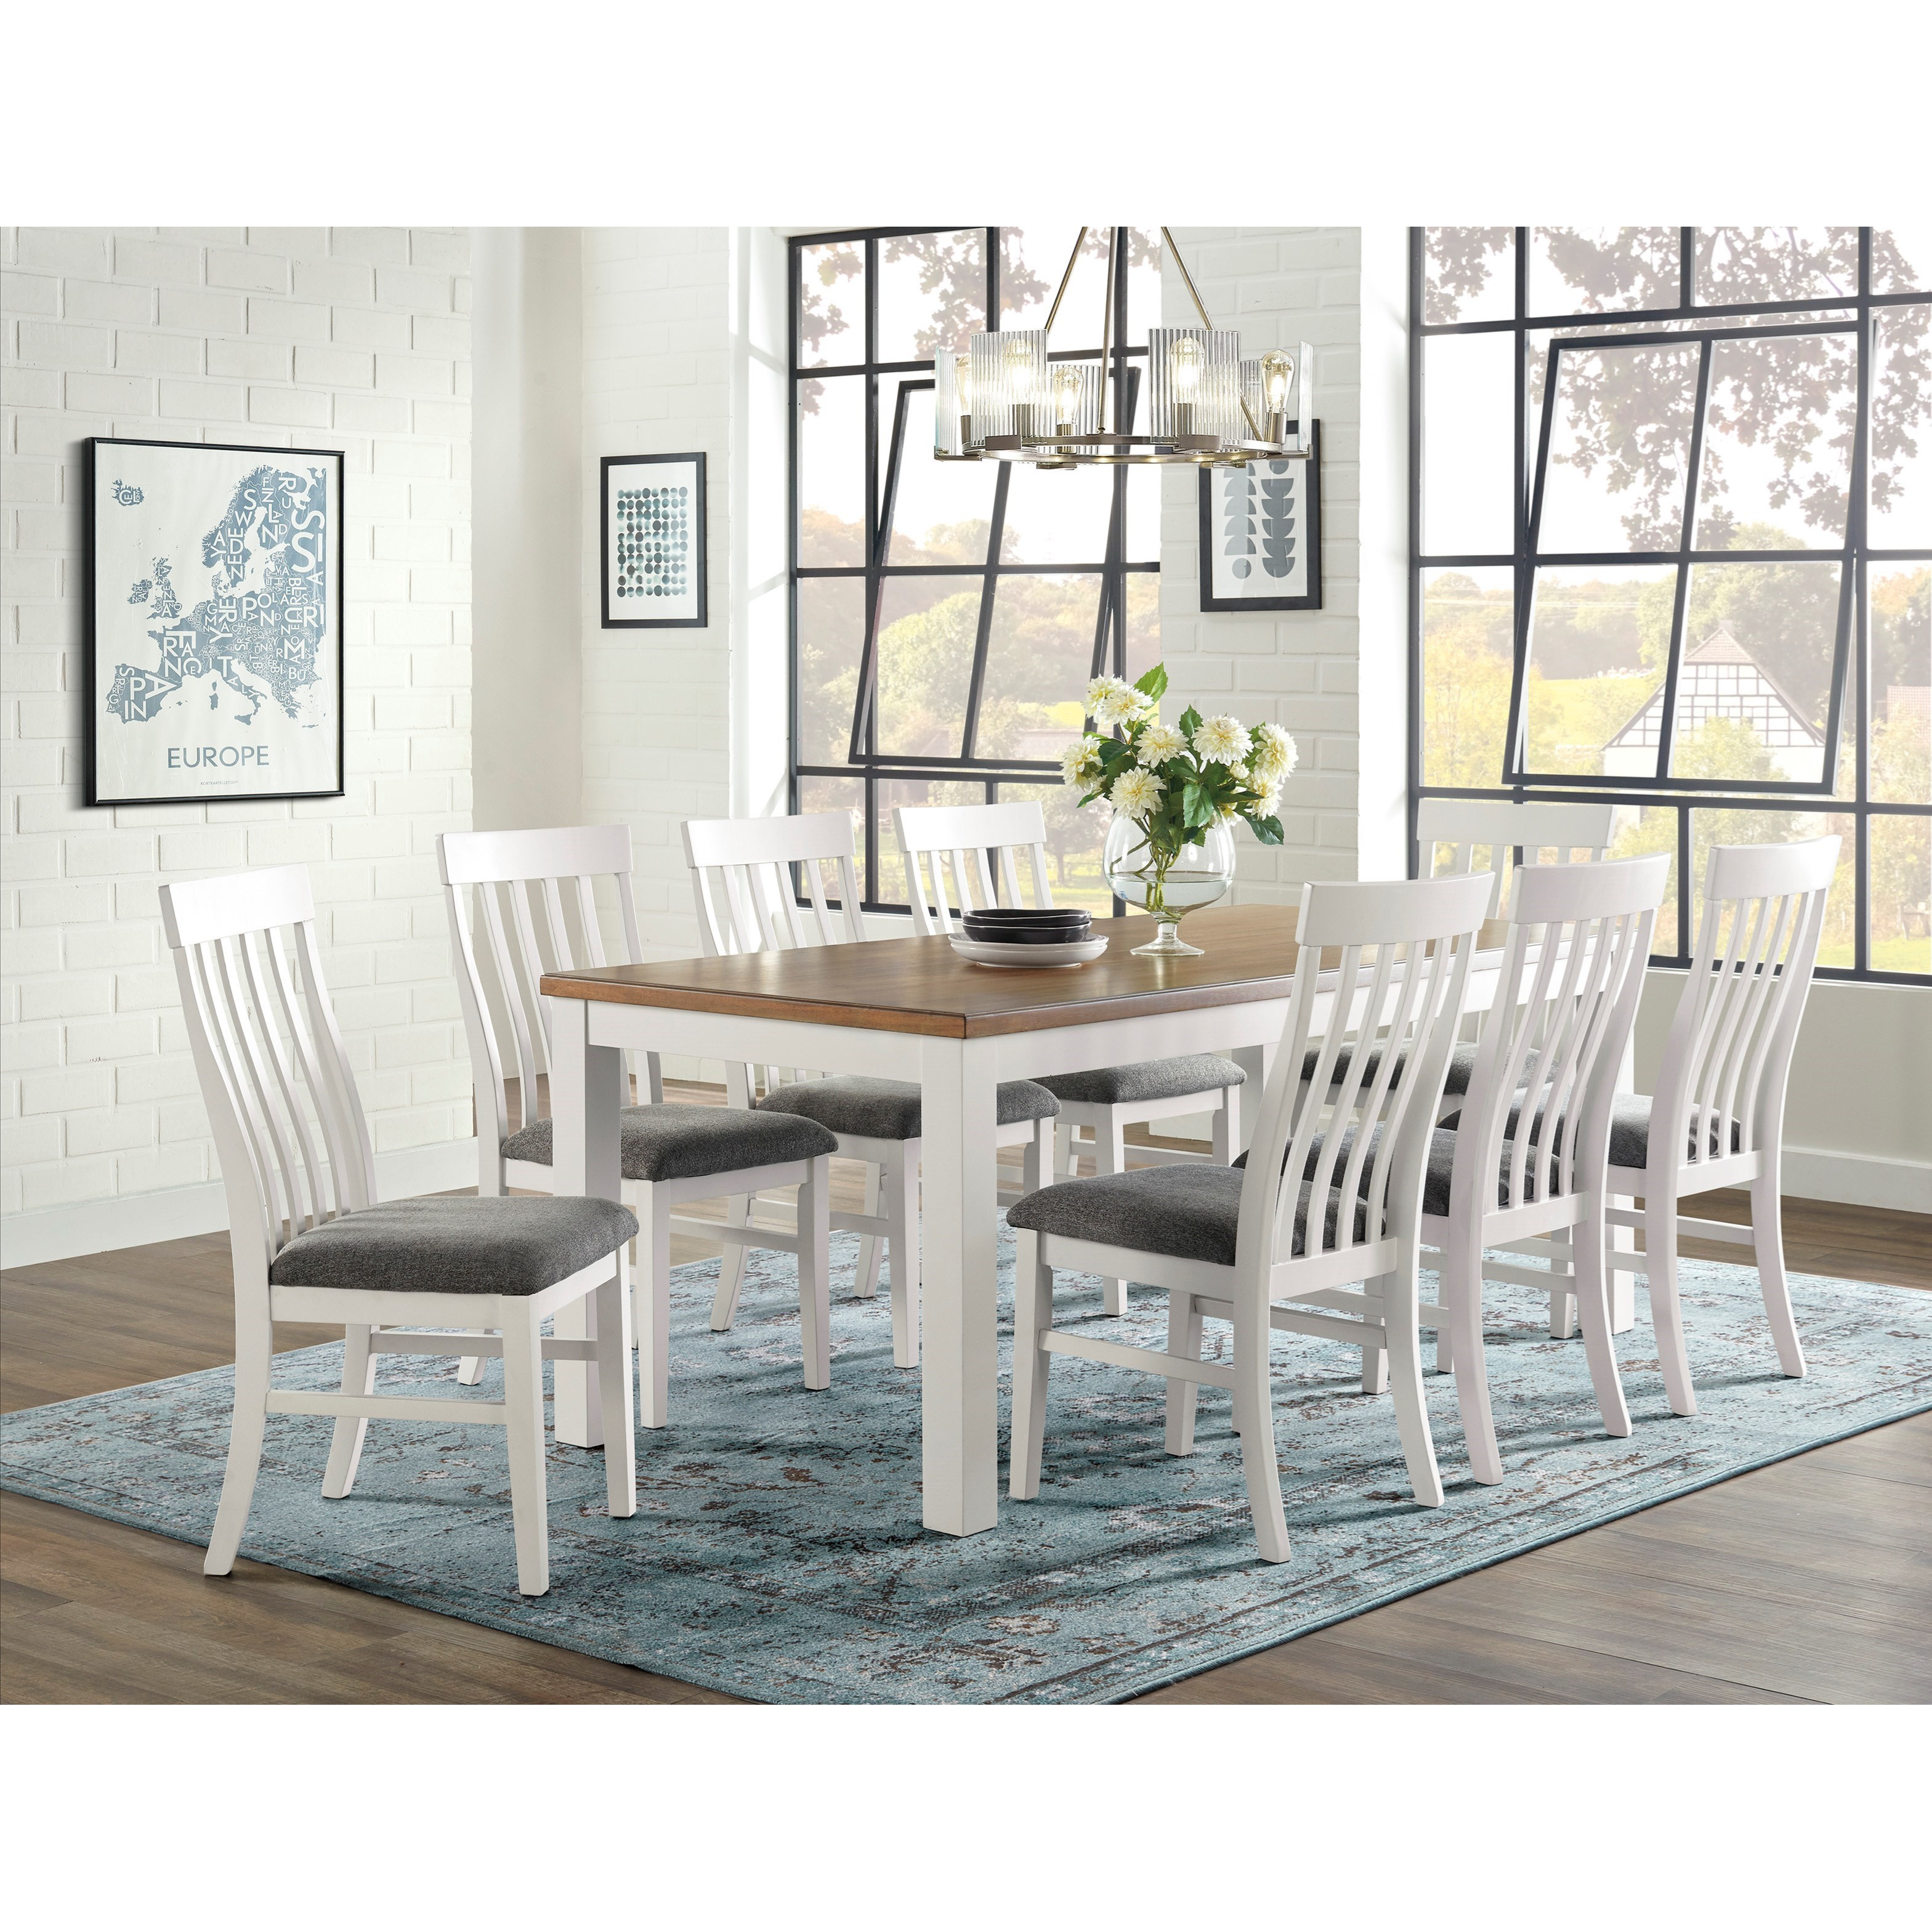 Westconi 9-Piece Dining Table Set by Ashley Furniture at Red Knot